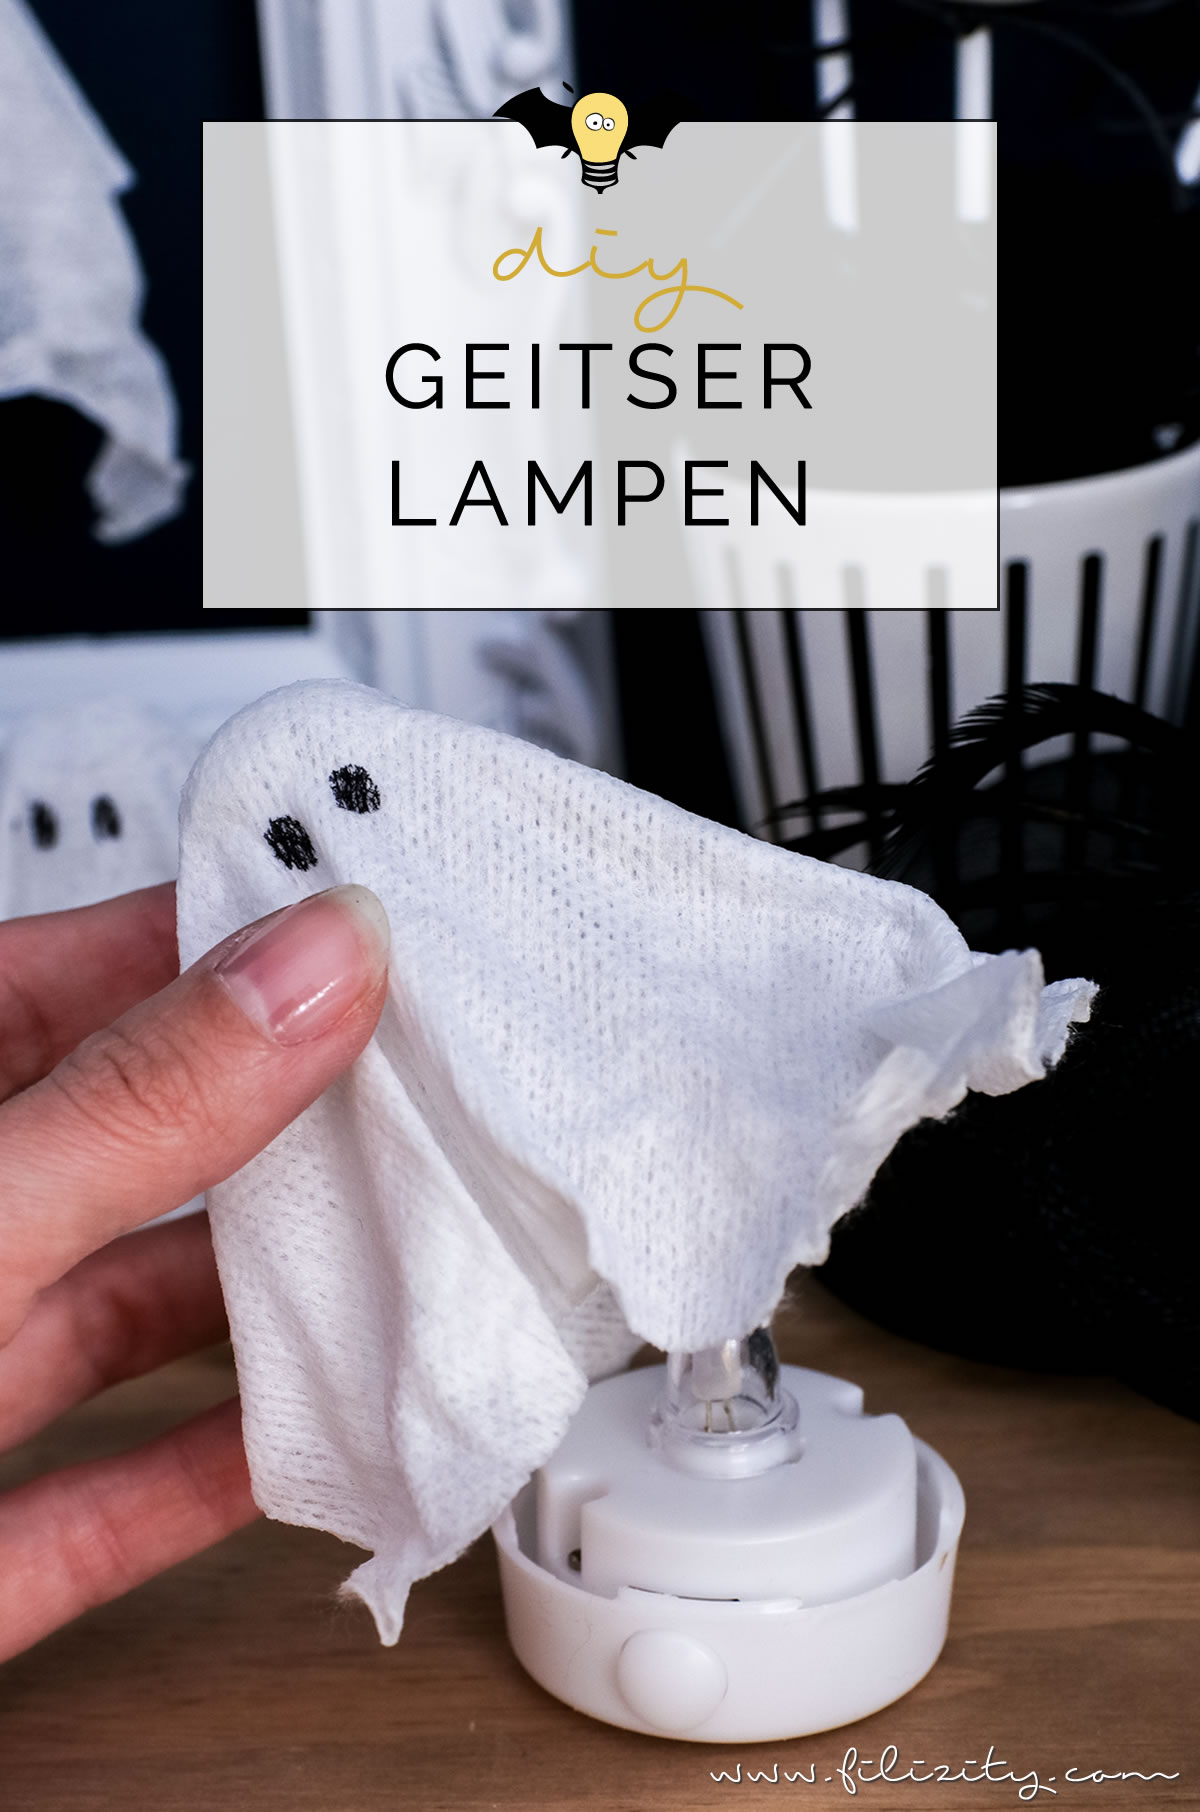 diy halloweendeko selber machen geister lampen und geister anh nger food blog. Black Bedroom Furniture Sets. Home Design Ideas